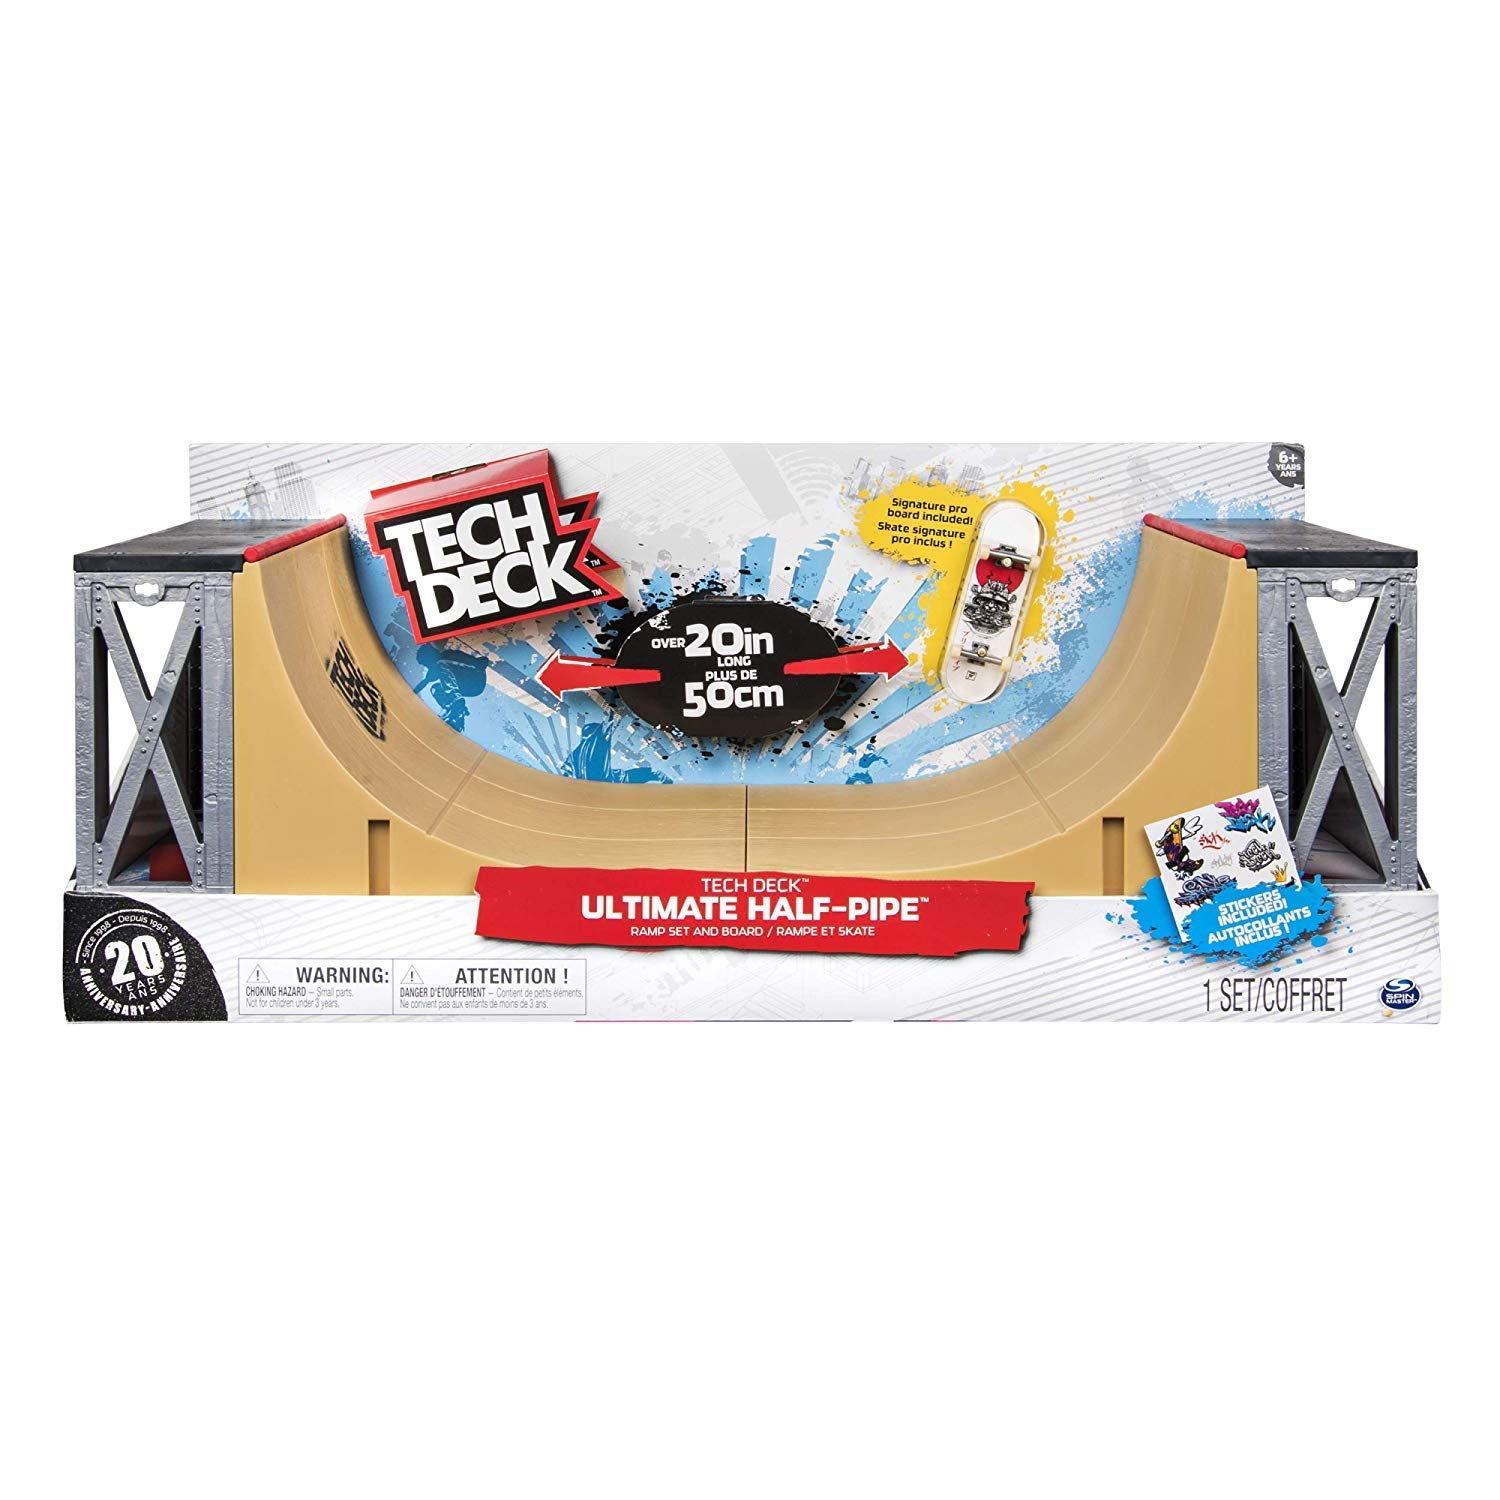 Tech Deck - Ultimate Half-Pipe Ramp and Exclusive Primitive Pro Model Finger Board, for Ages 6 and Up by Tech Deck (Image #2)